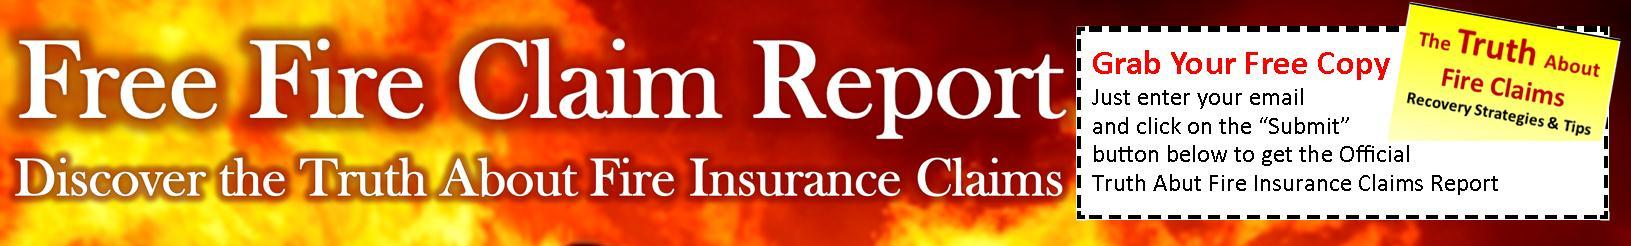 Free Fire Insurance Claim Report - Discover the Truth About Fire Insurance Claims